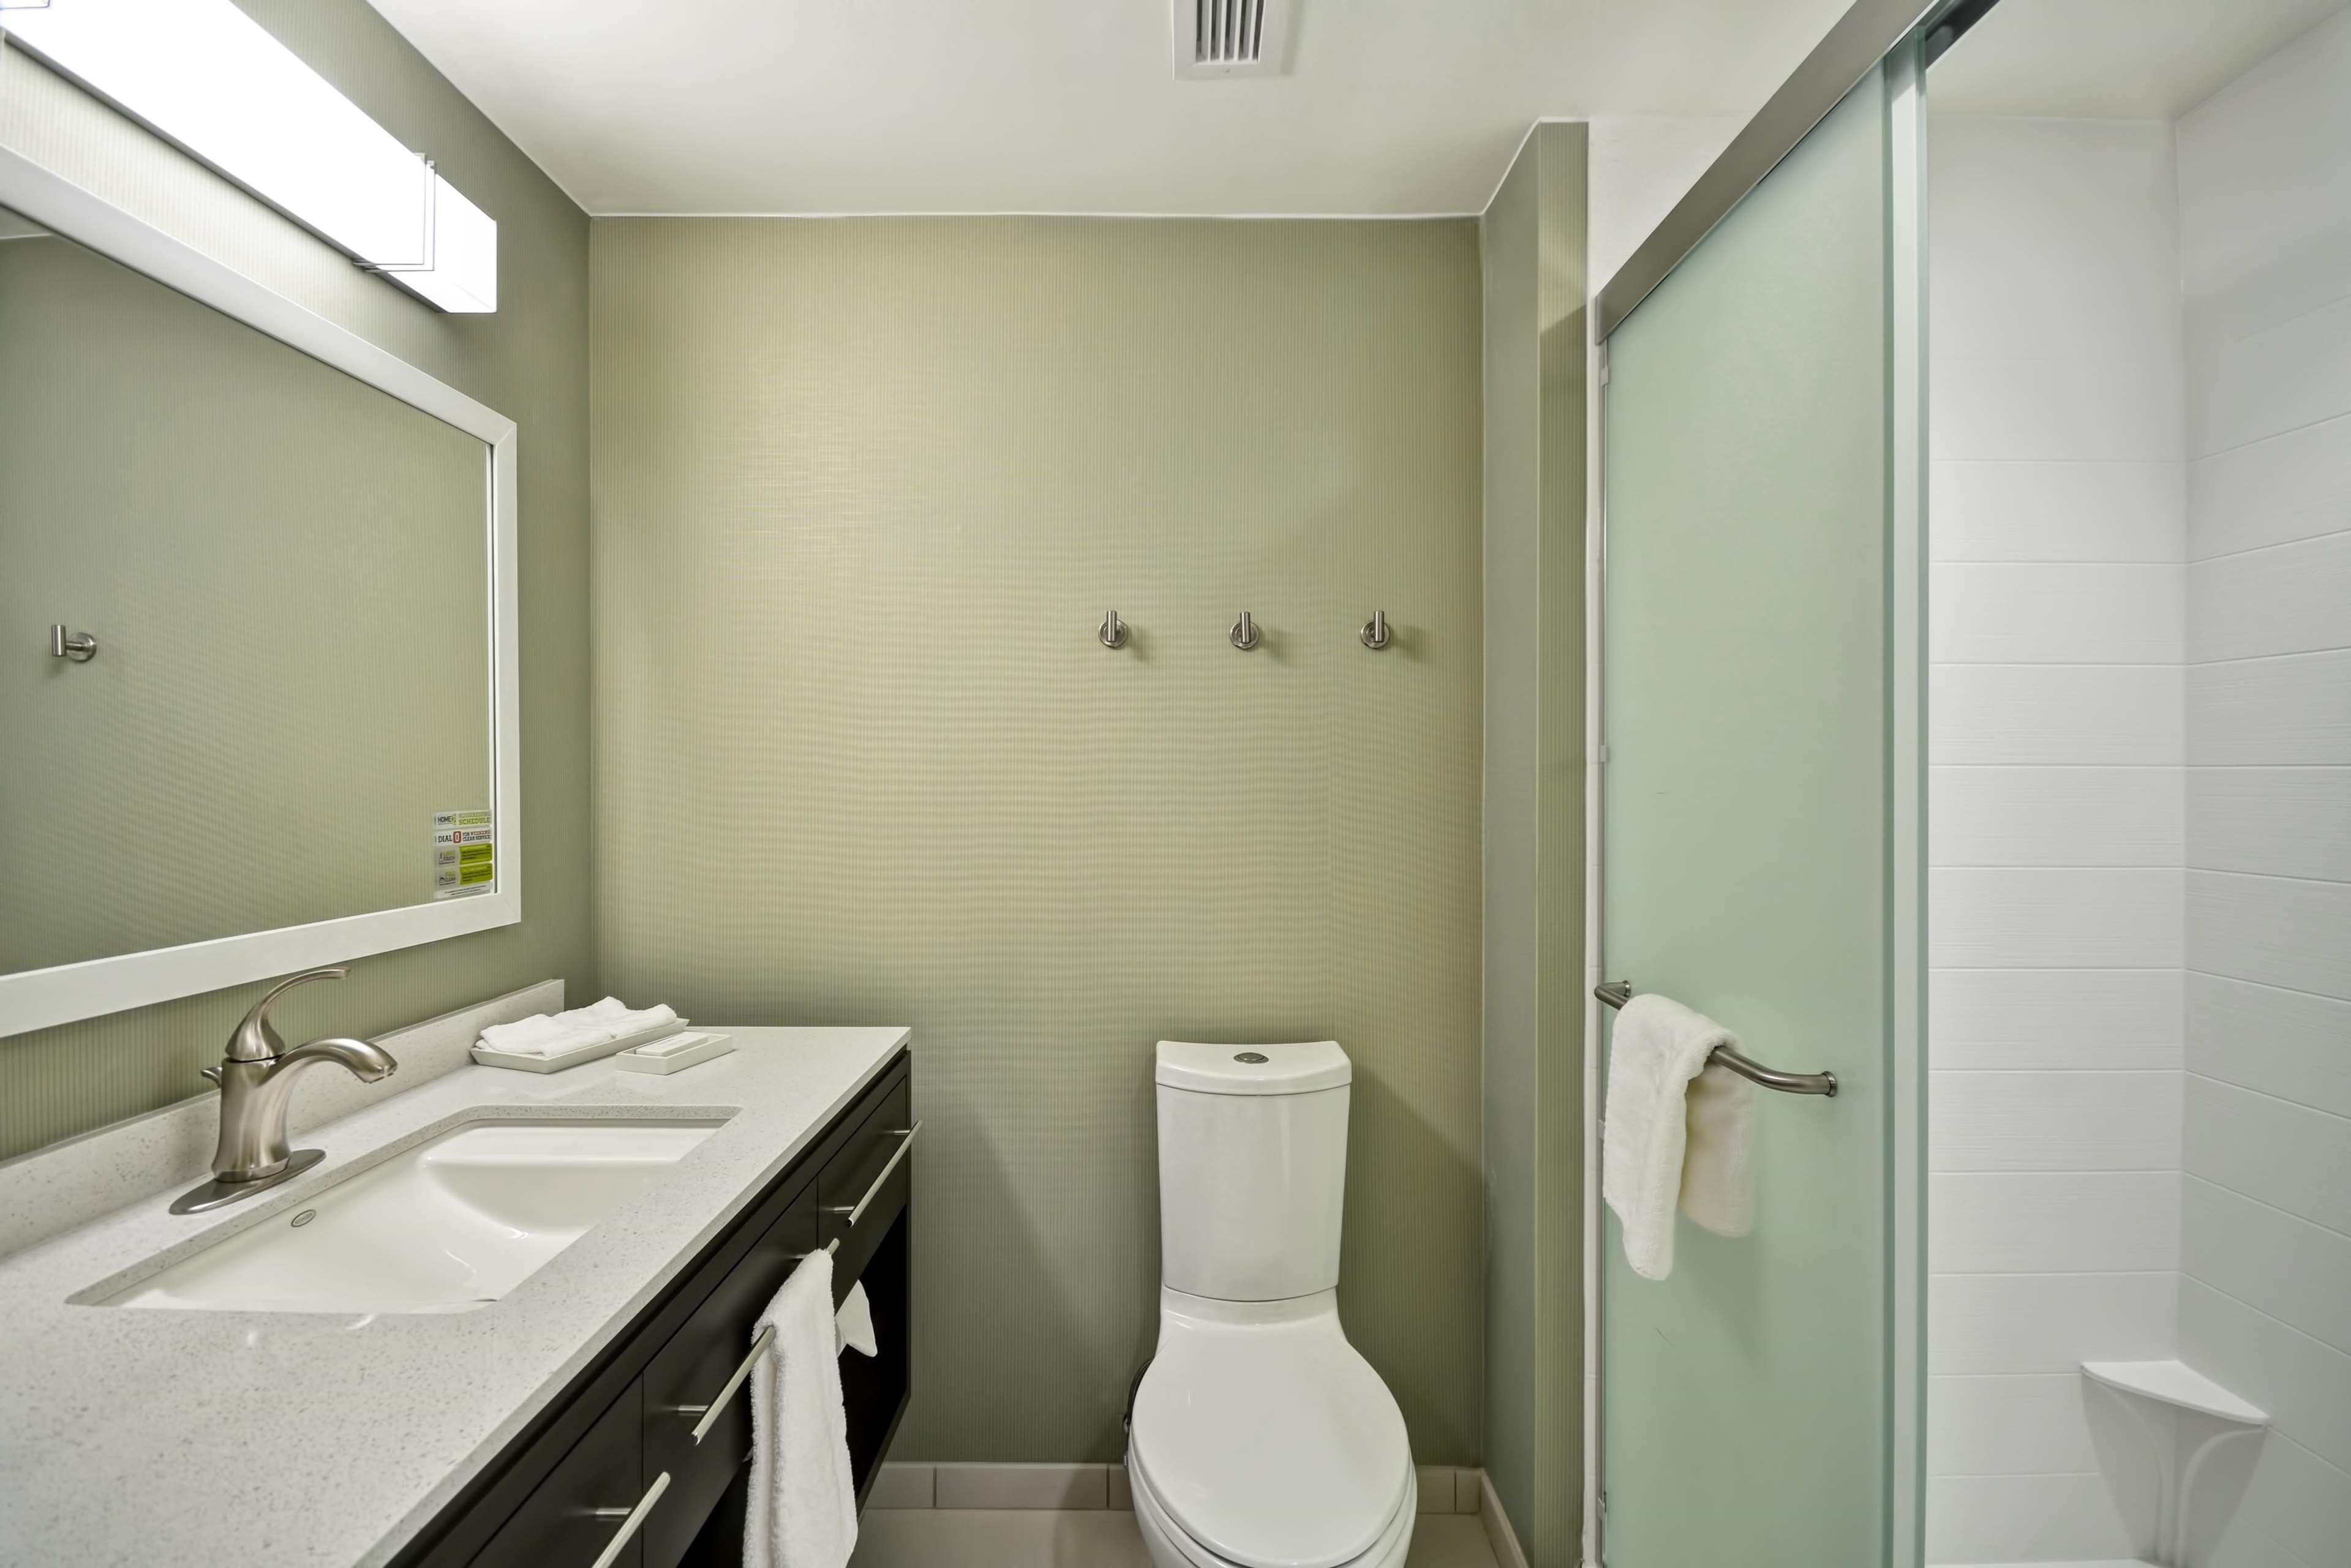 Home2 Suites By Hilton Maumee Toledo image 5